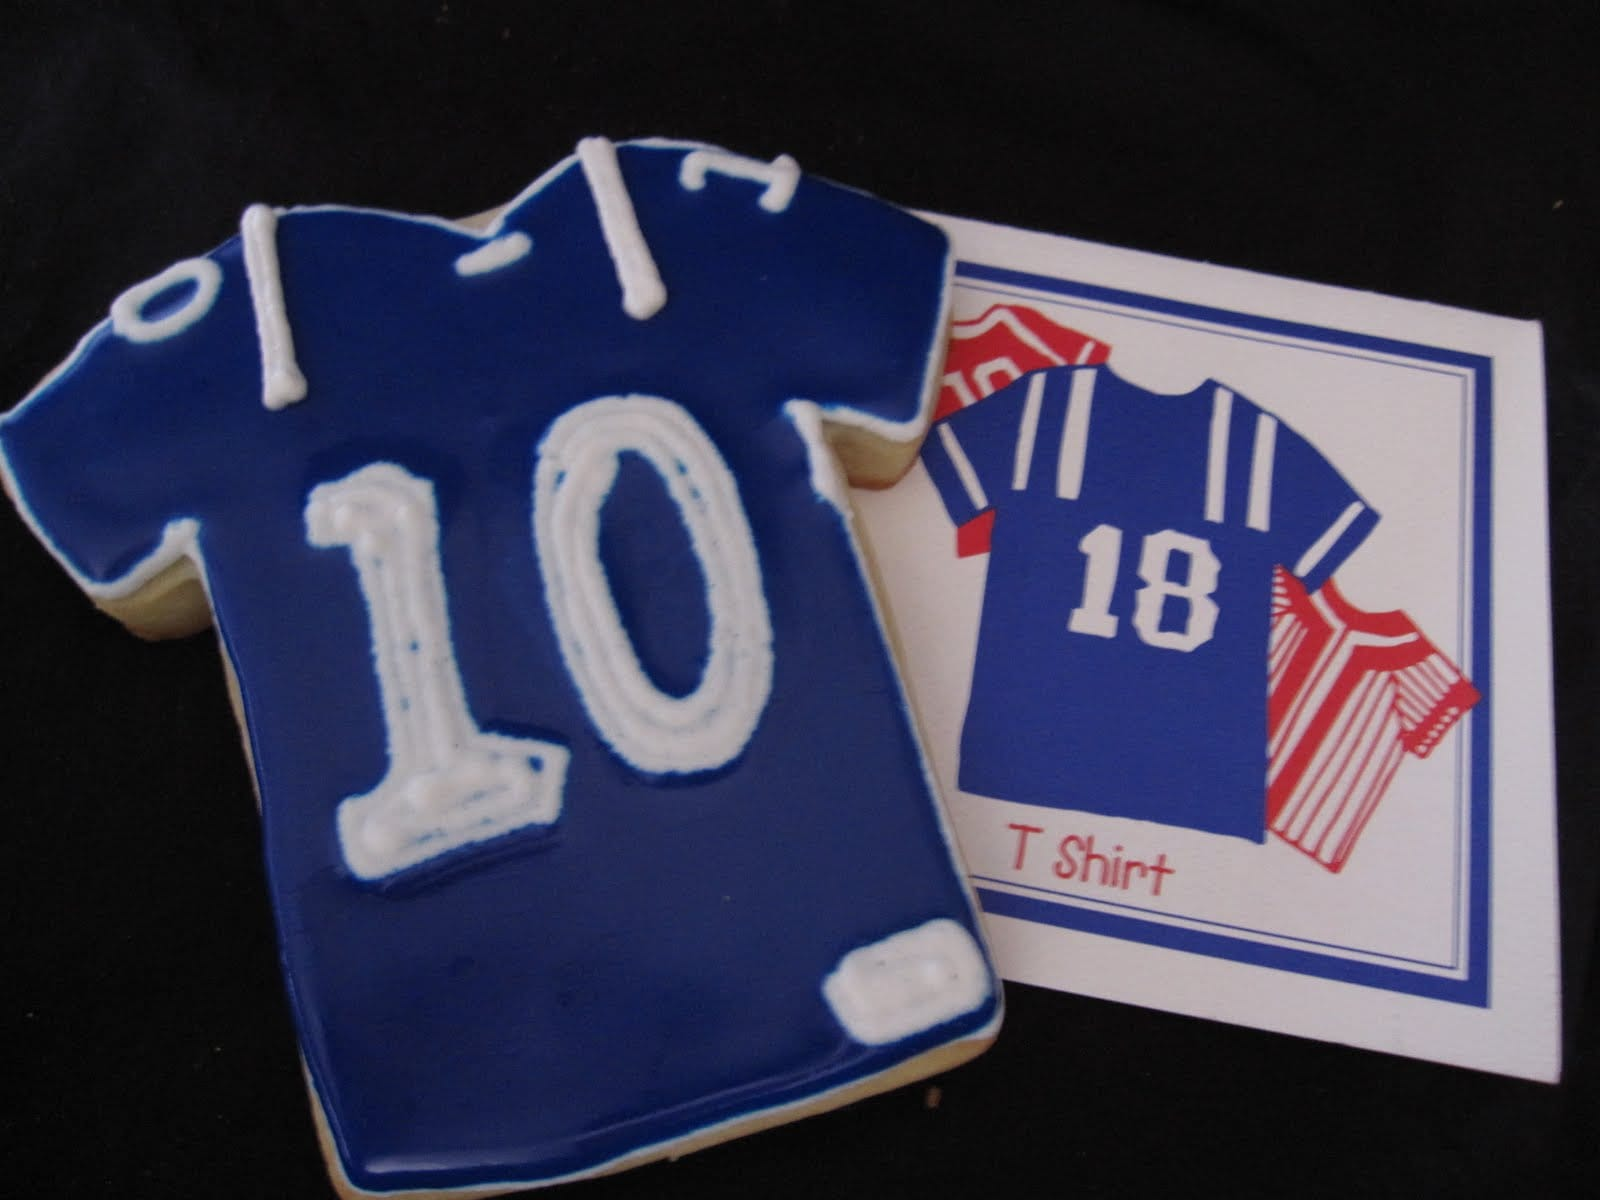 Cookie decorated as NY Giants jersey #10